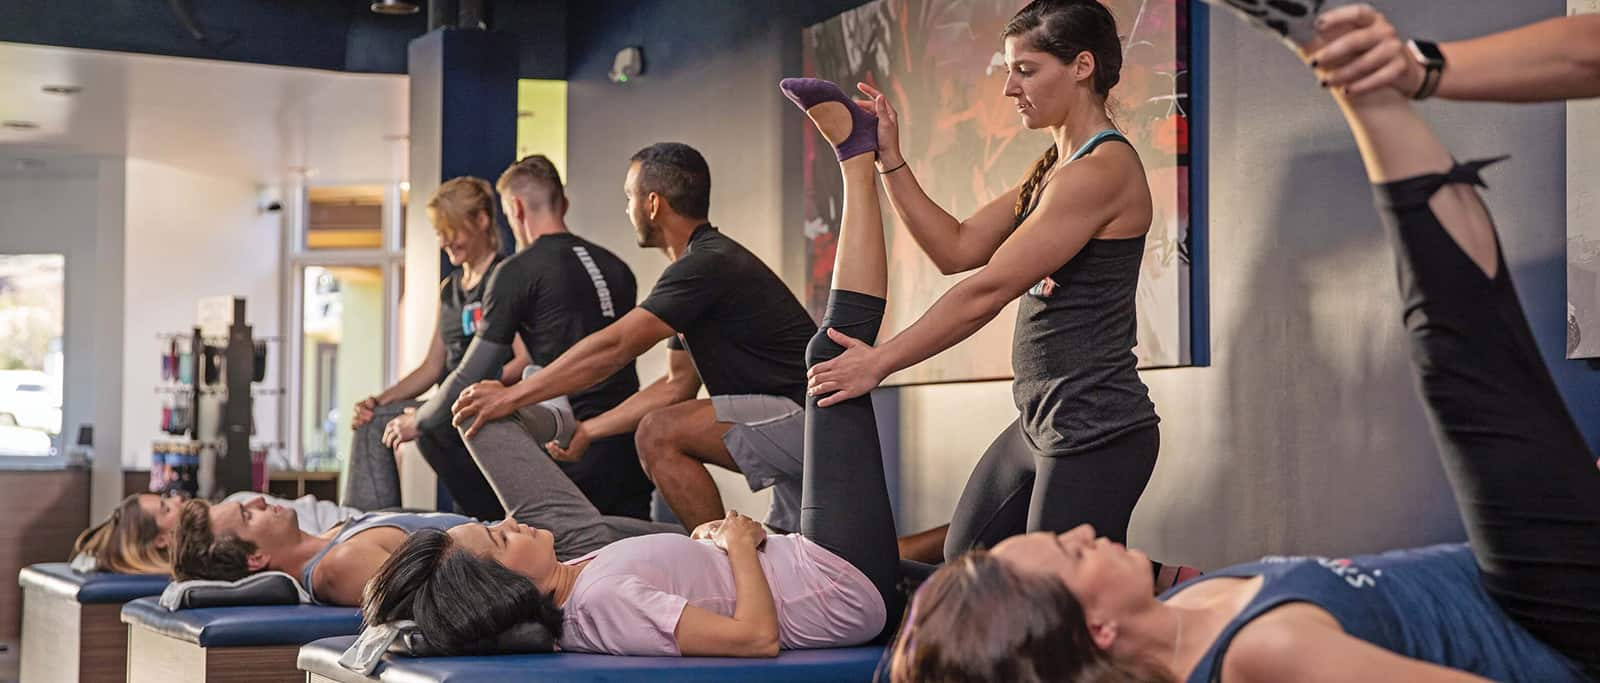 Women and men getting stretch by professionals at Stretch Lab in El Segundo